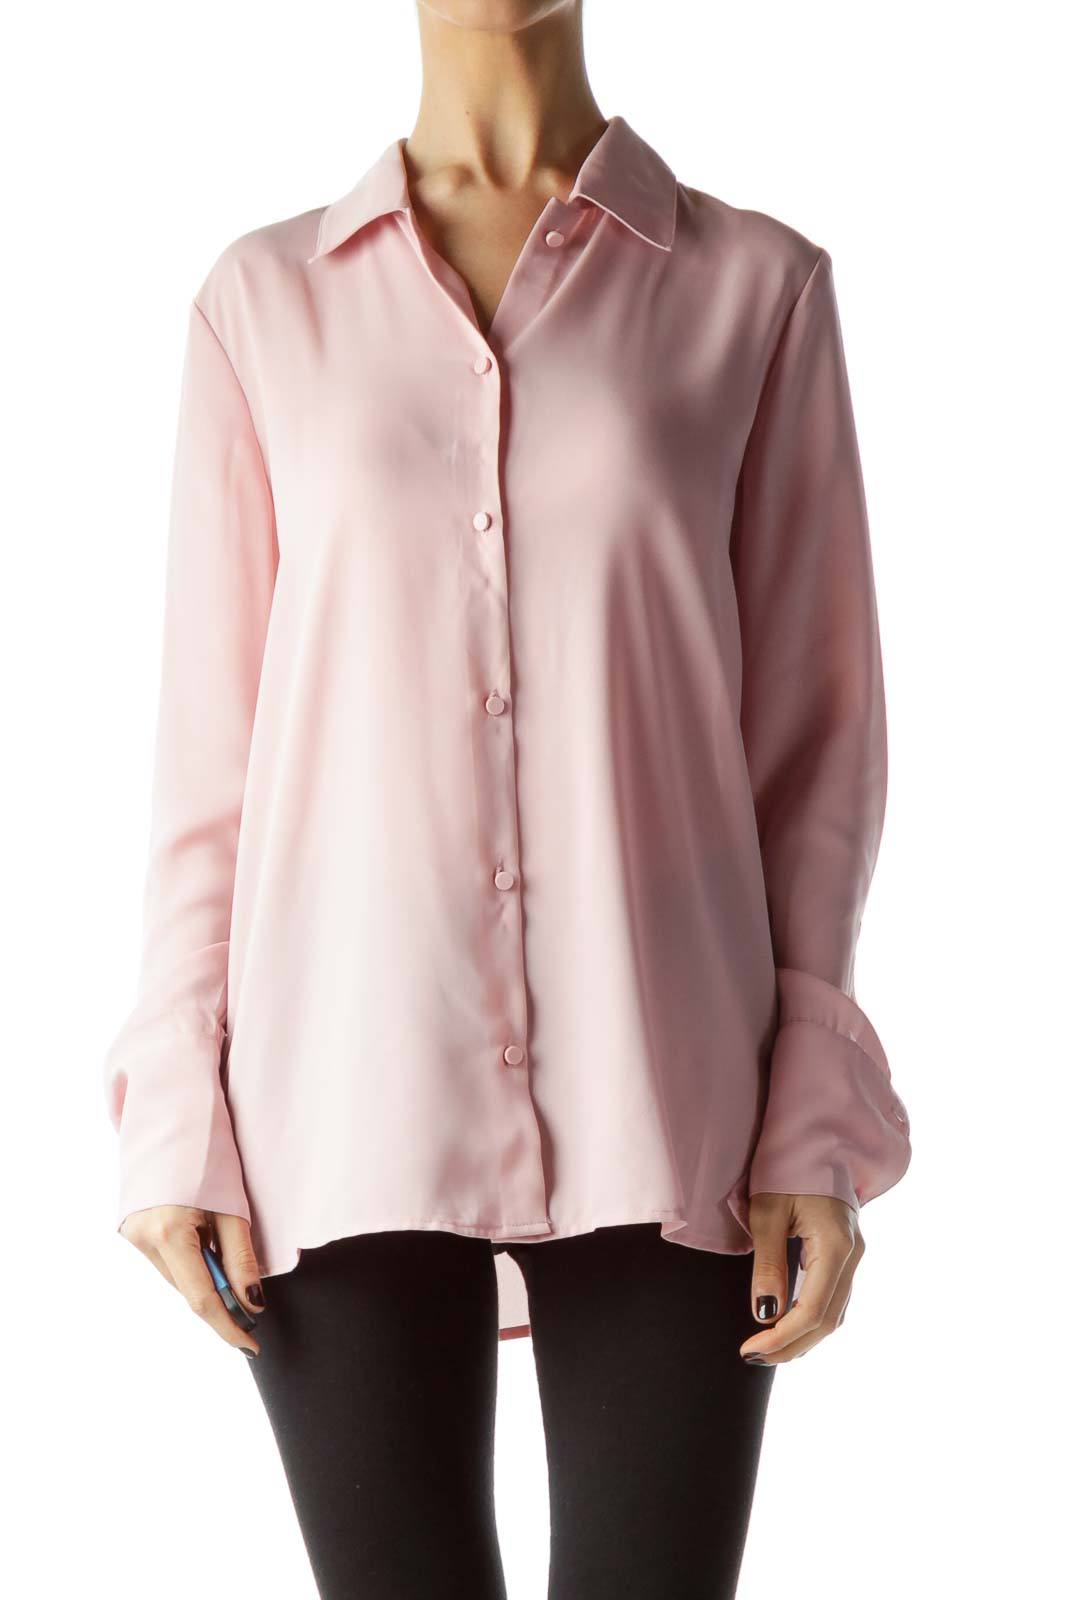 Baby Pink Light Shirt